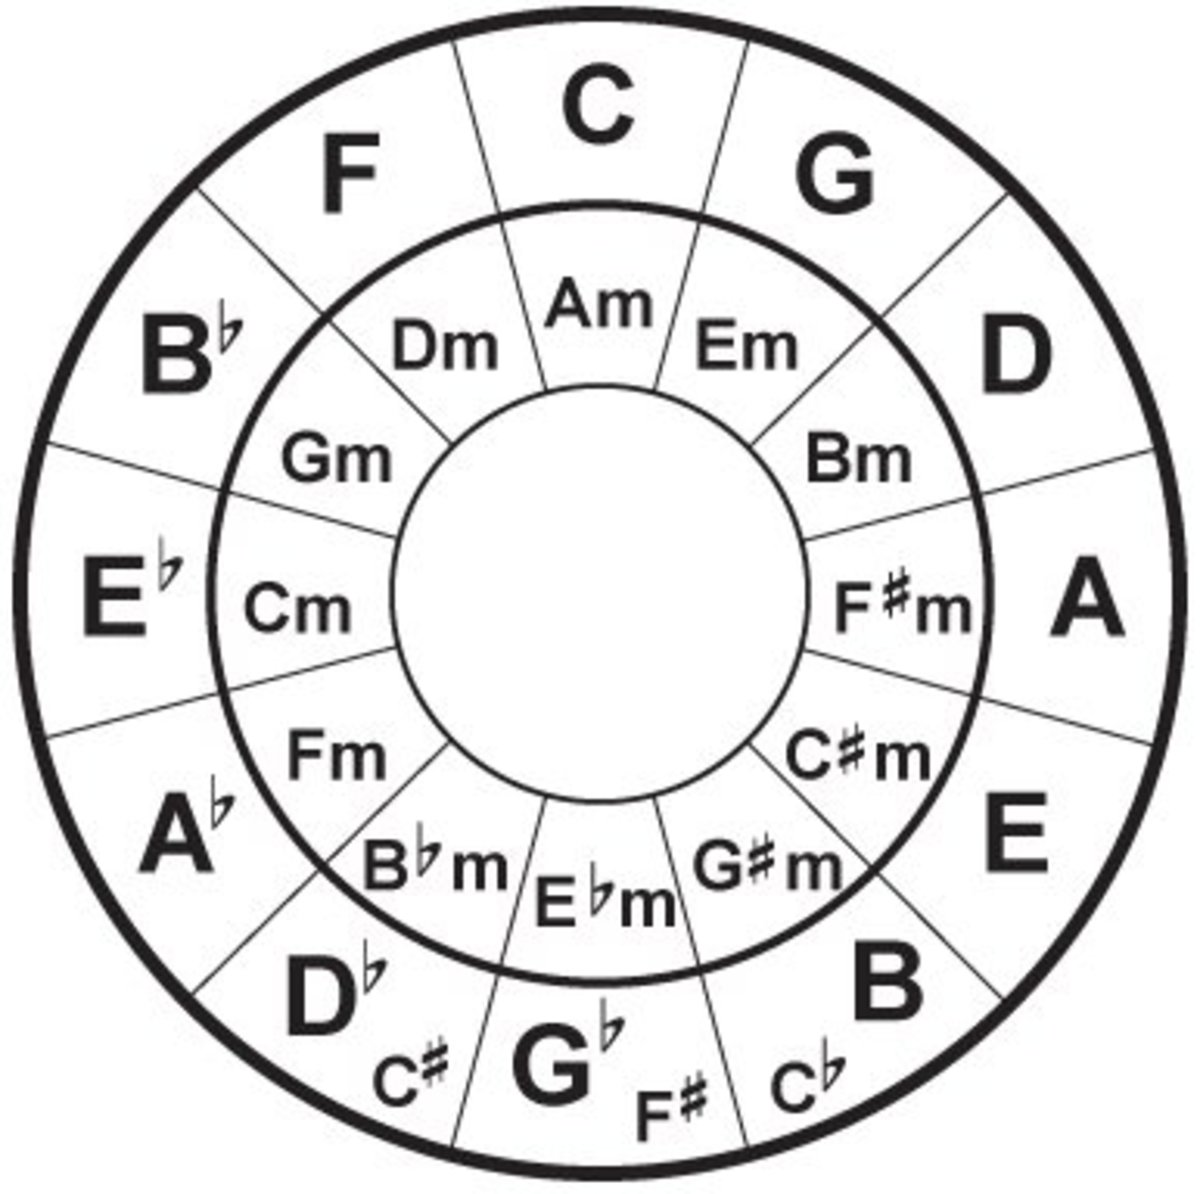 Piano neo soul piano chords : Easy Circle of Fifths Chords for R&B | Spinditty